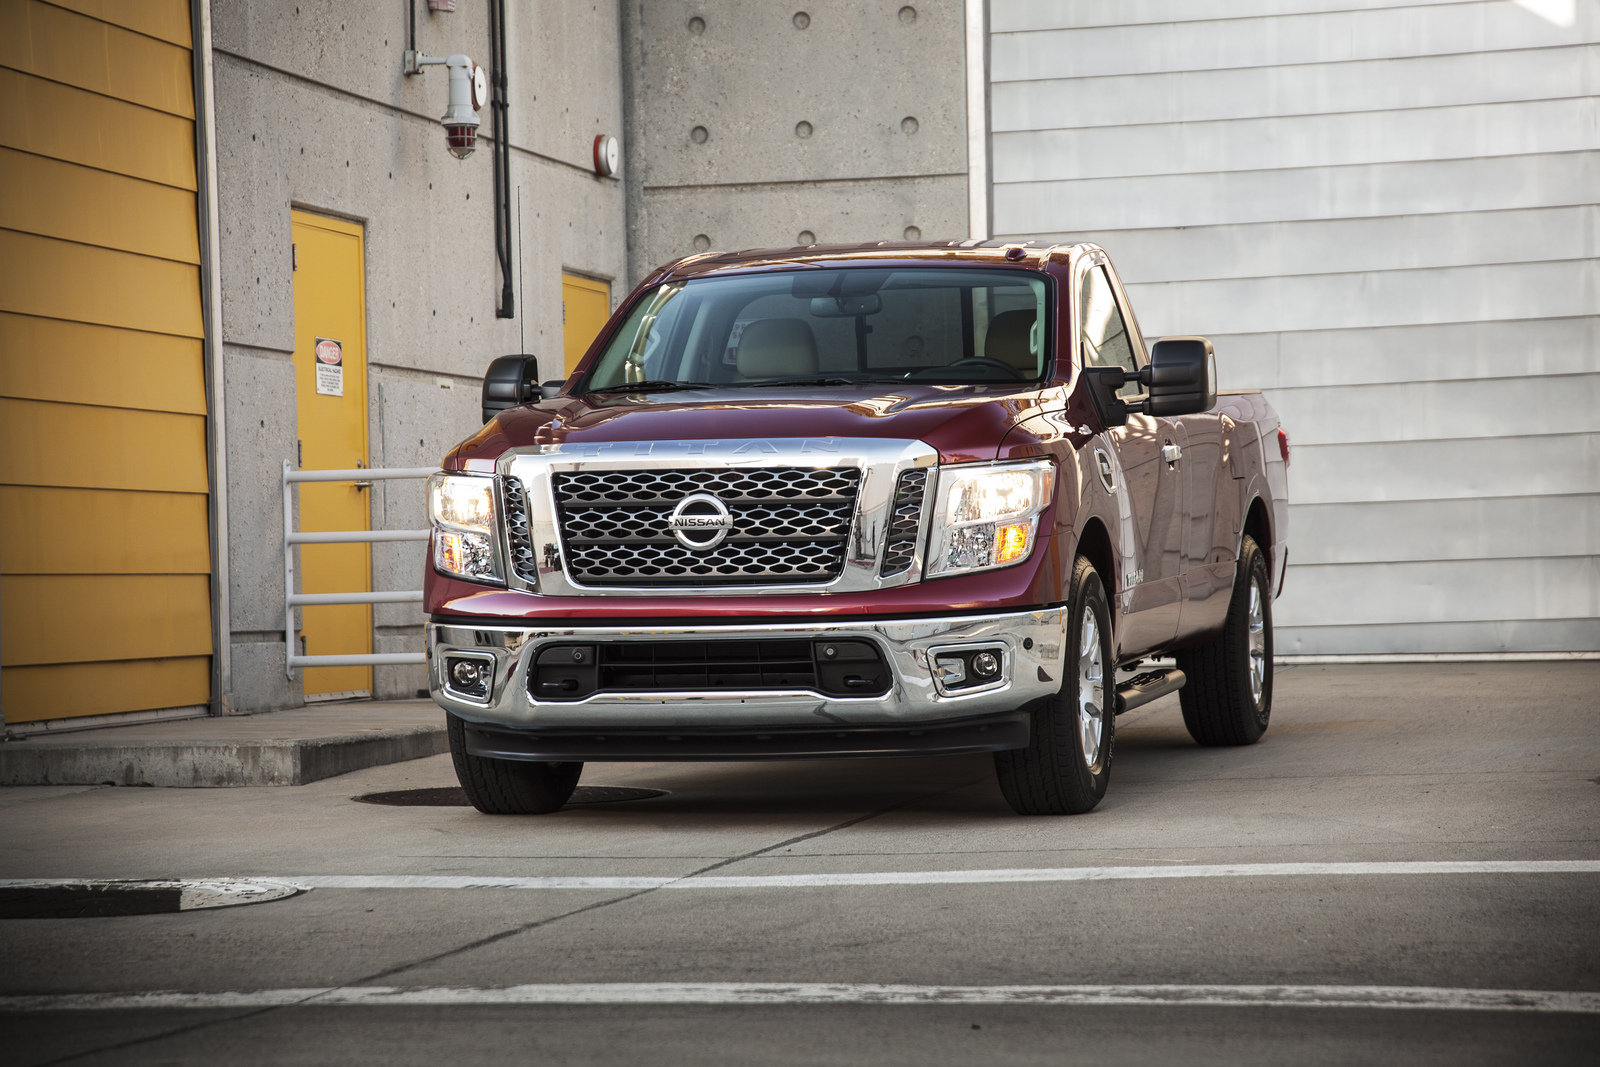 2017 nissan titan xd single cab picture 683666 truck review top speed. Black Bedroom Furniture Sets. Home Design Ideas